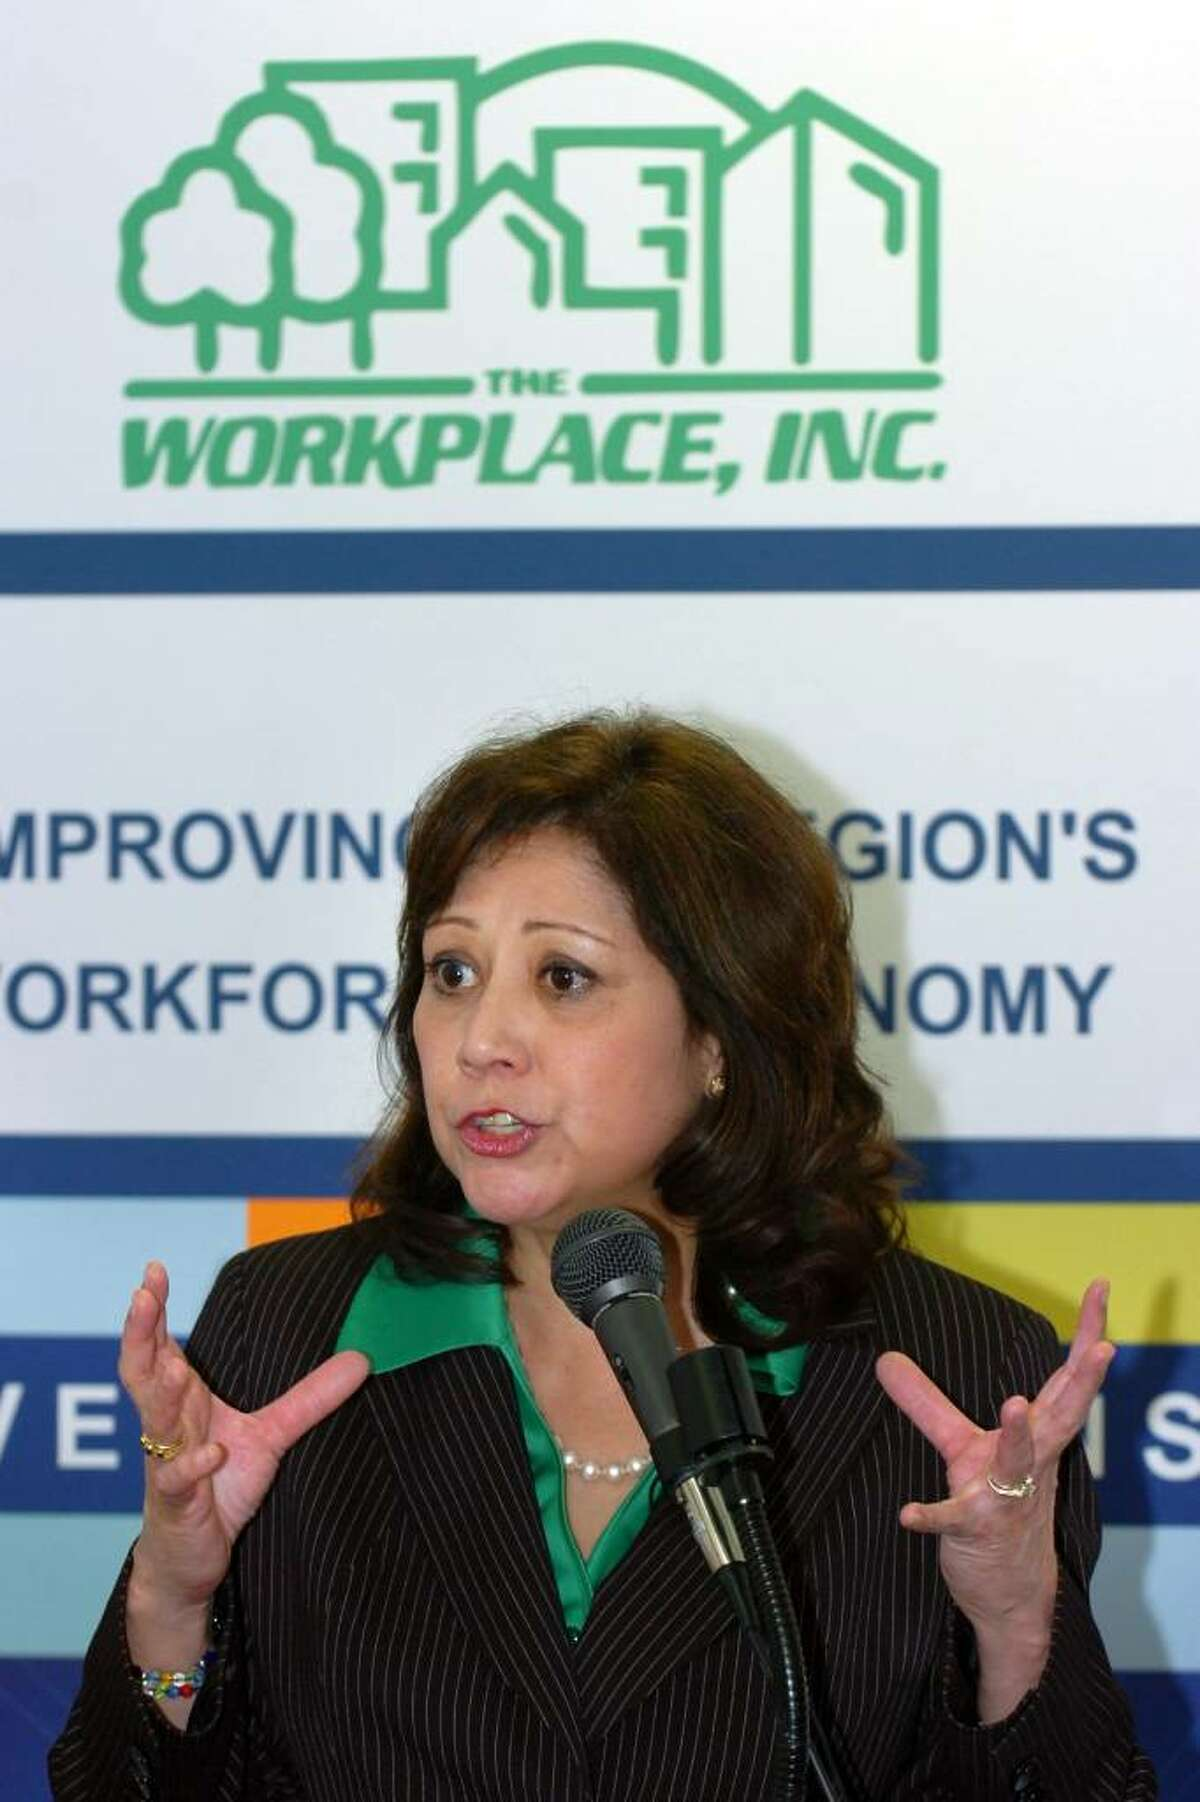 U.S. Secretary of Labor Hilda Solis speaks at The Workplace, Inc. in Bridgeport, Conn. Monday March 29th, 1010.